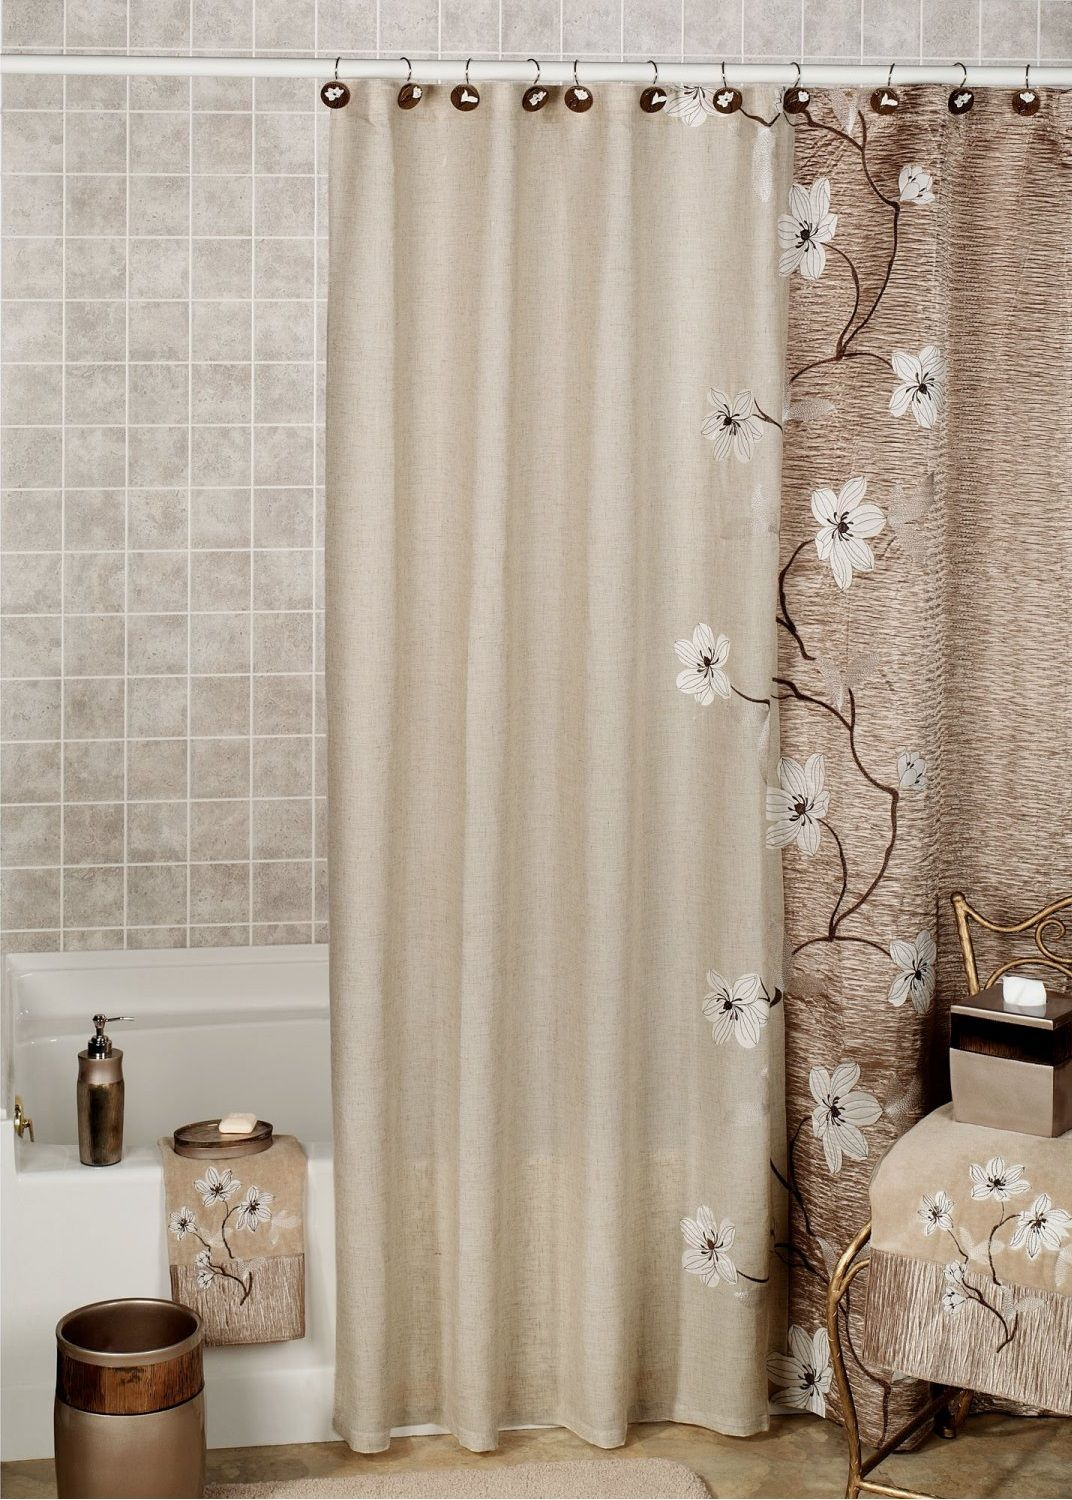 Bathroom shower curtains how to completely change your